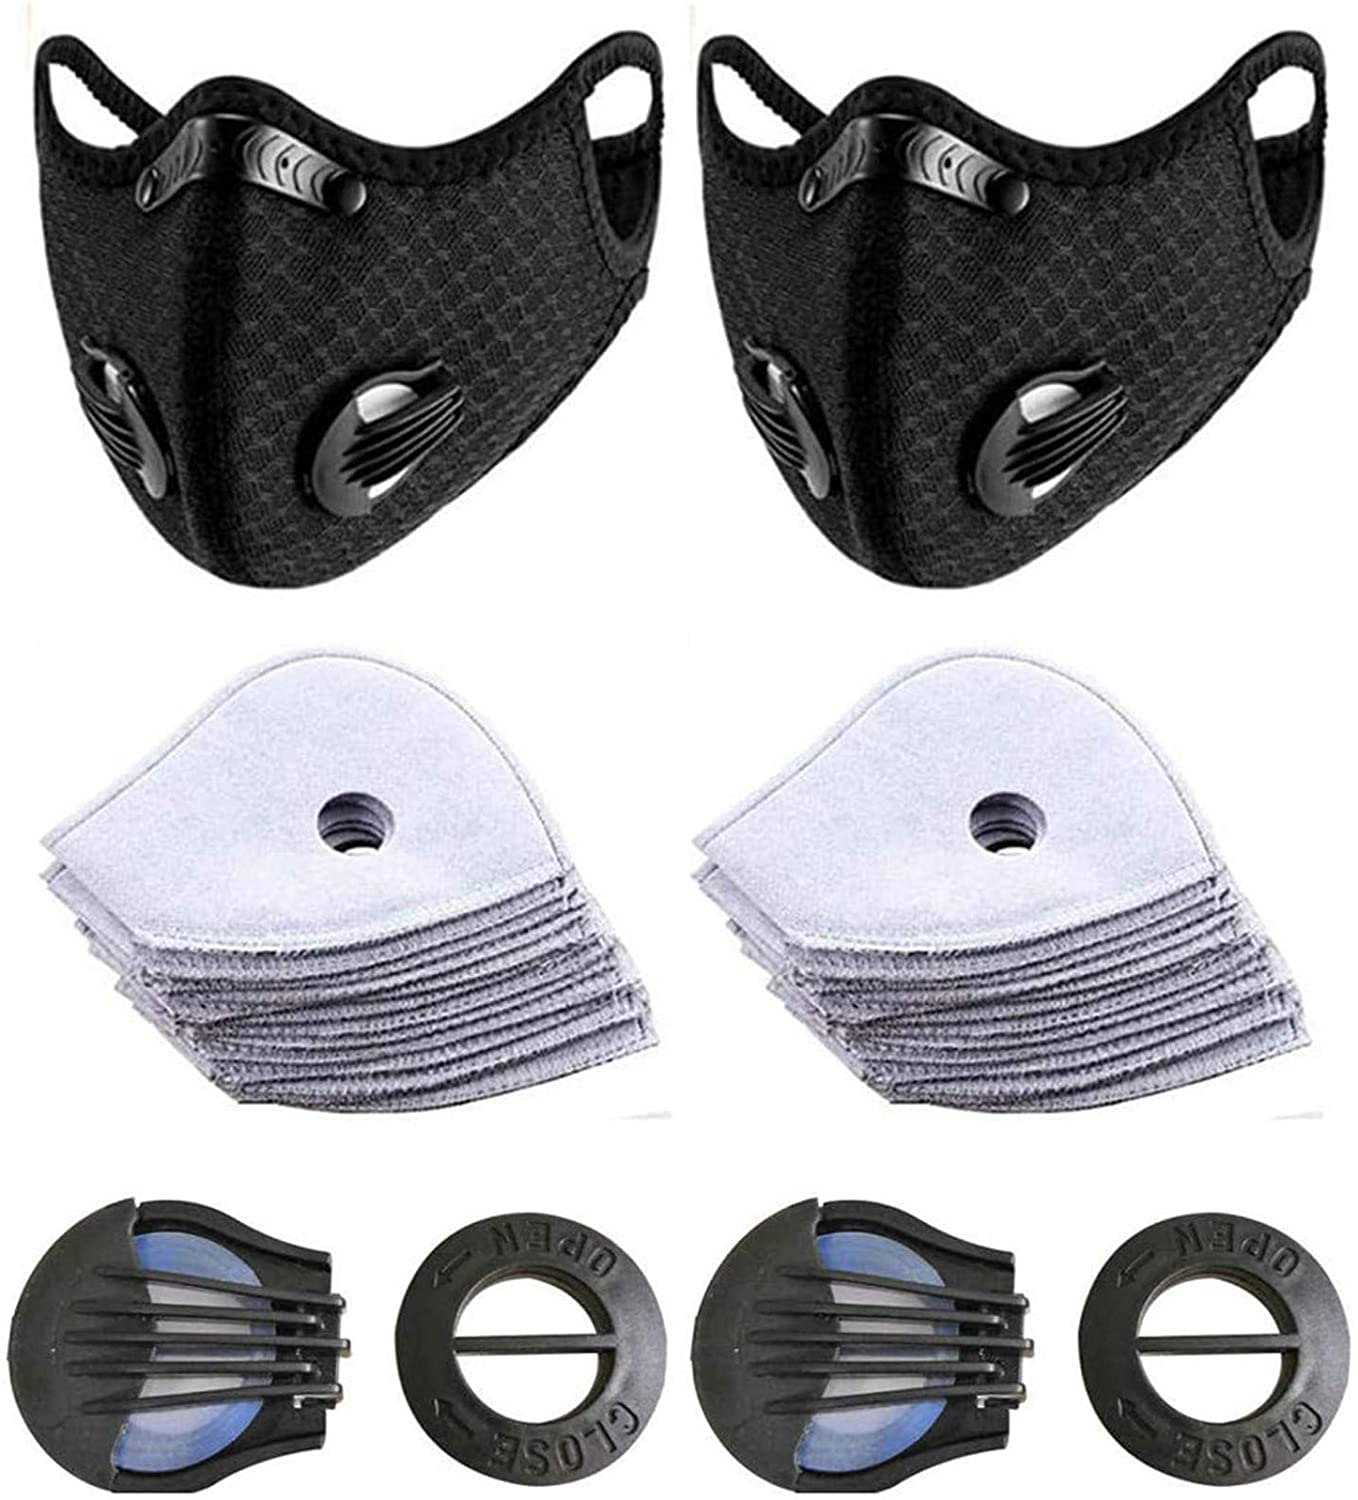 OMGYST 2PCS Soft Stretch Reusable Protect_Face_Mask_Breathable Adult Face Balaclavas With 10 Filters & 2 Replaceable Breathing Holes Bandana Mouth Protection for Women and Men